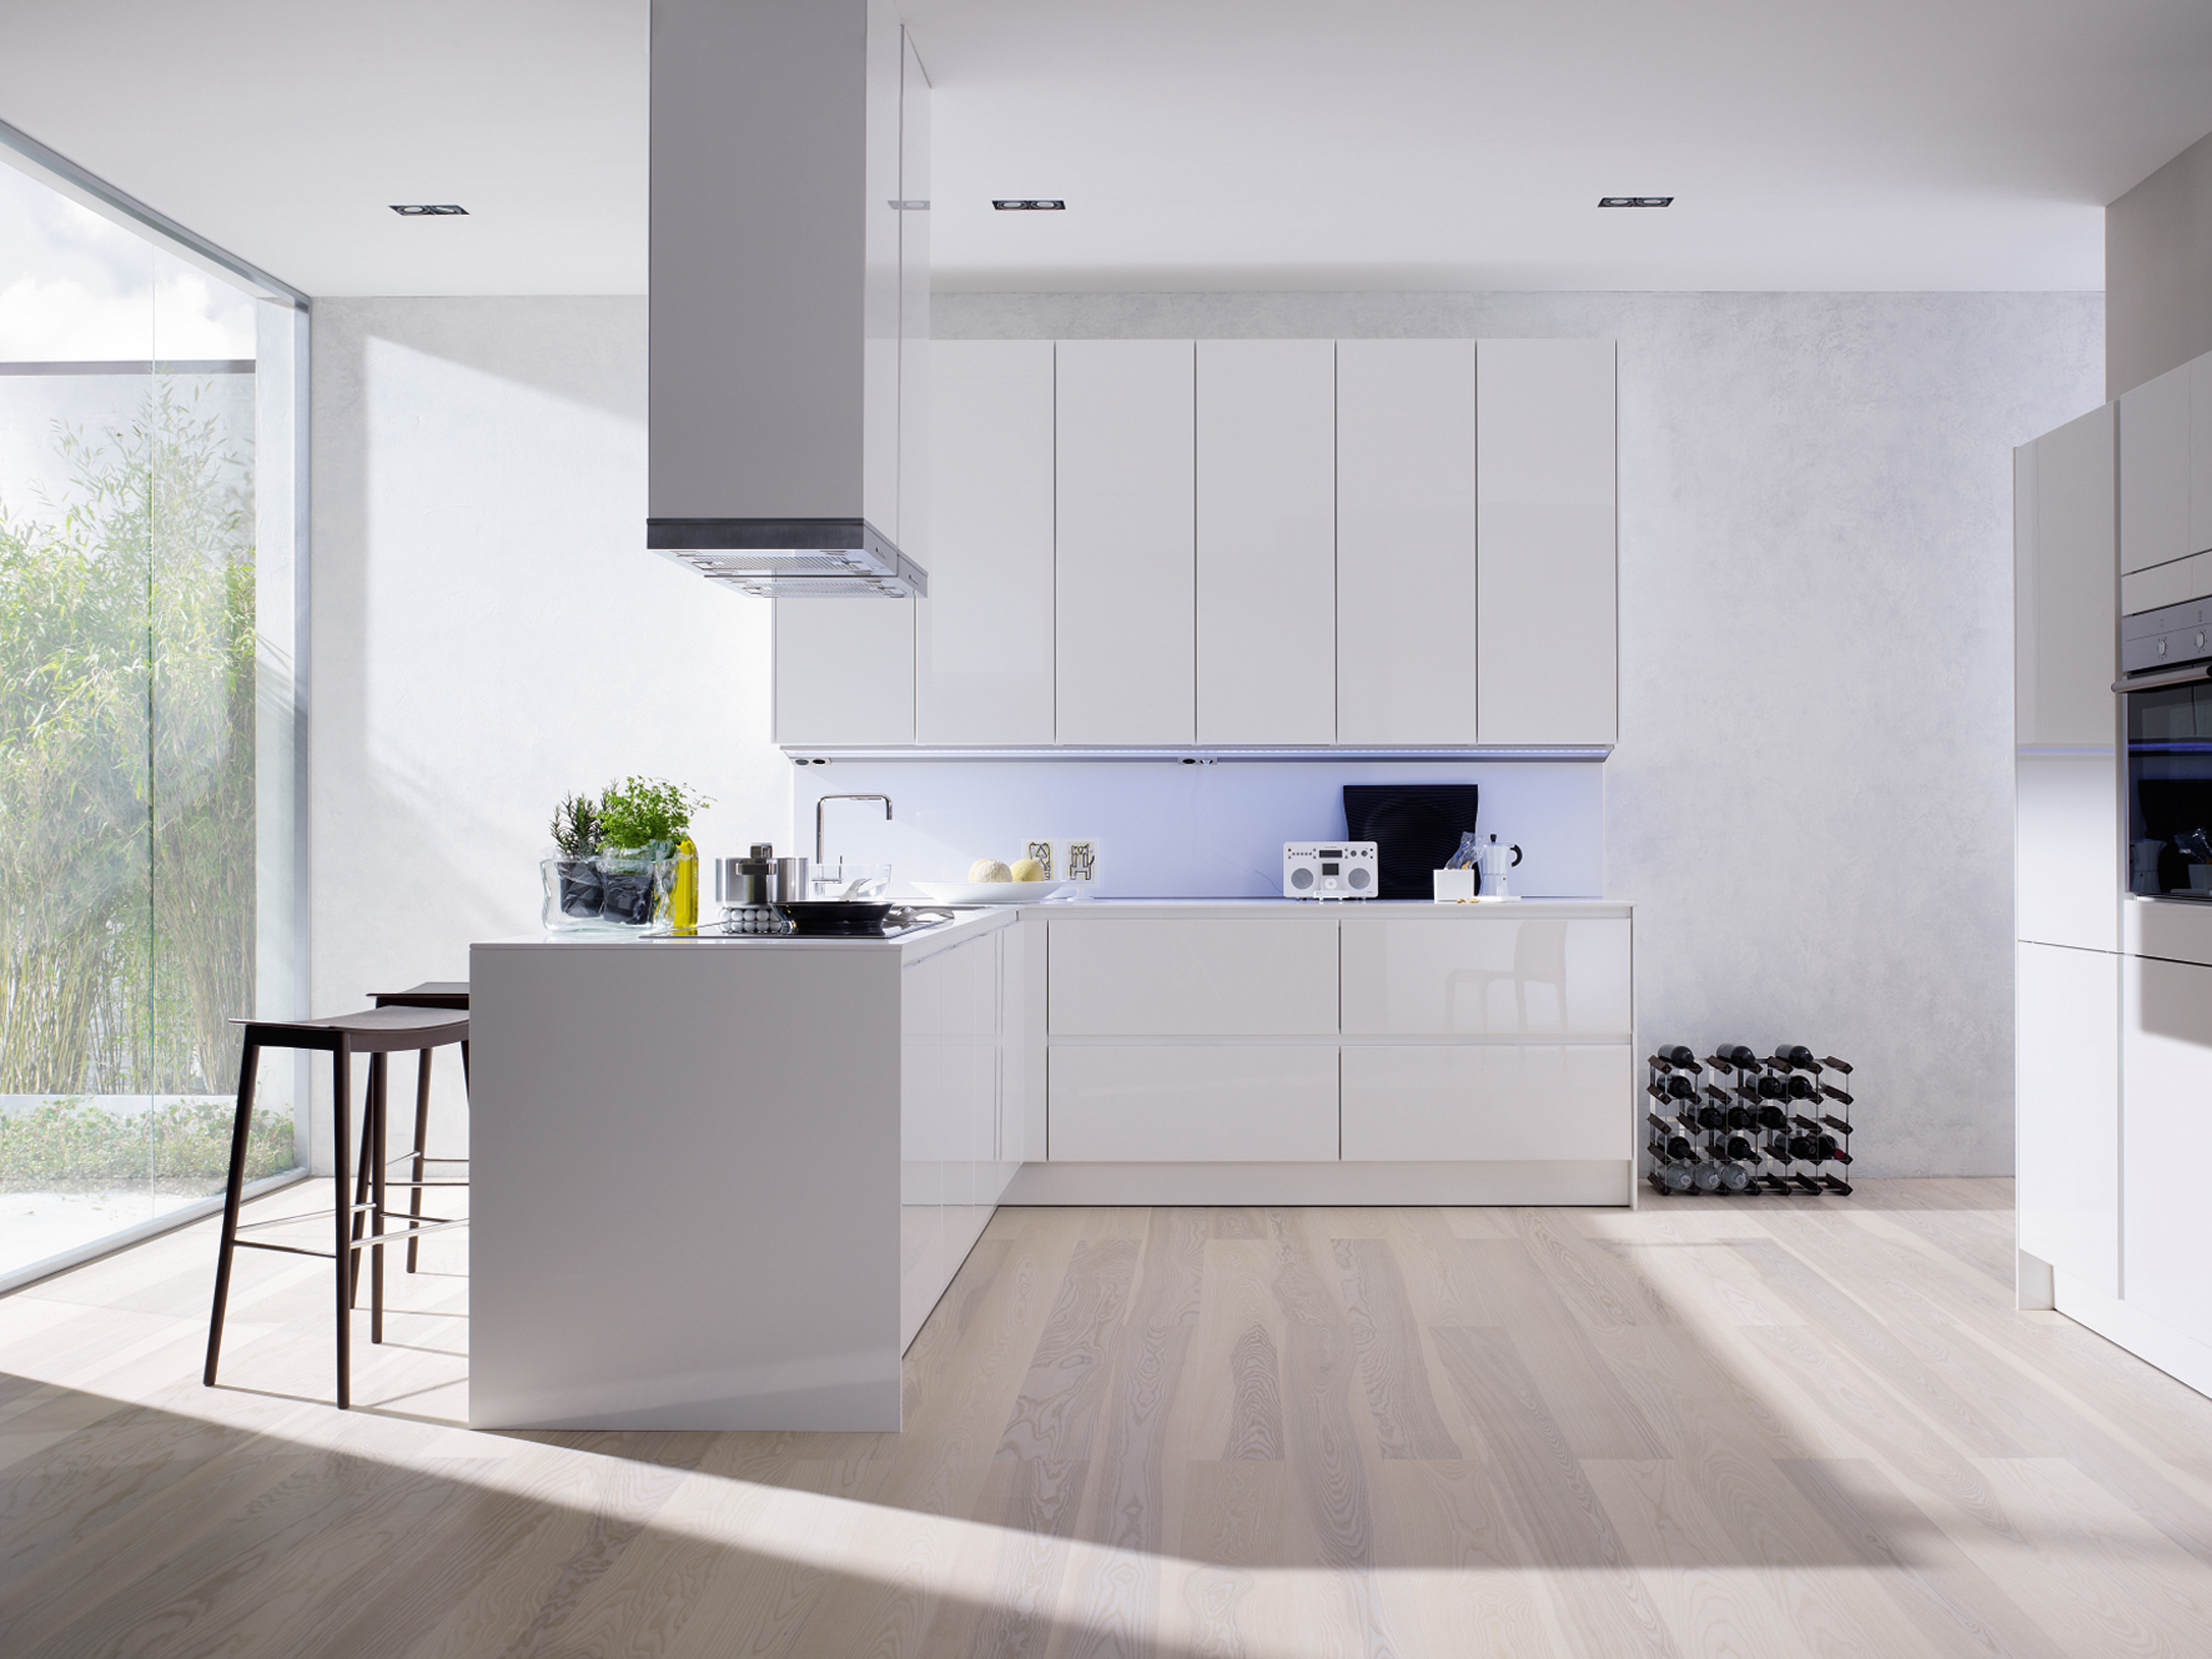 Luxury Kitchen Design Idea With White Kitchen Cabinet White Range Hood And White Hardwood Floor Tile Elegant Kitchen Design Ideas (Image 86 of 123)